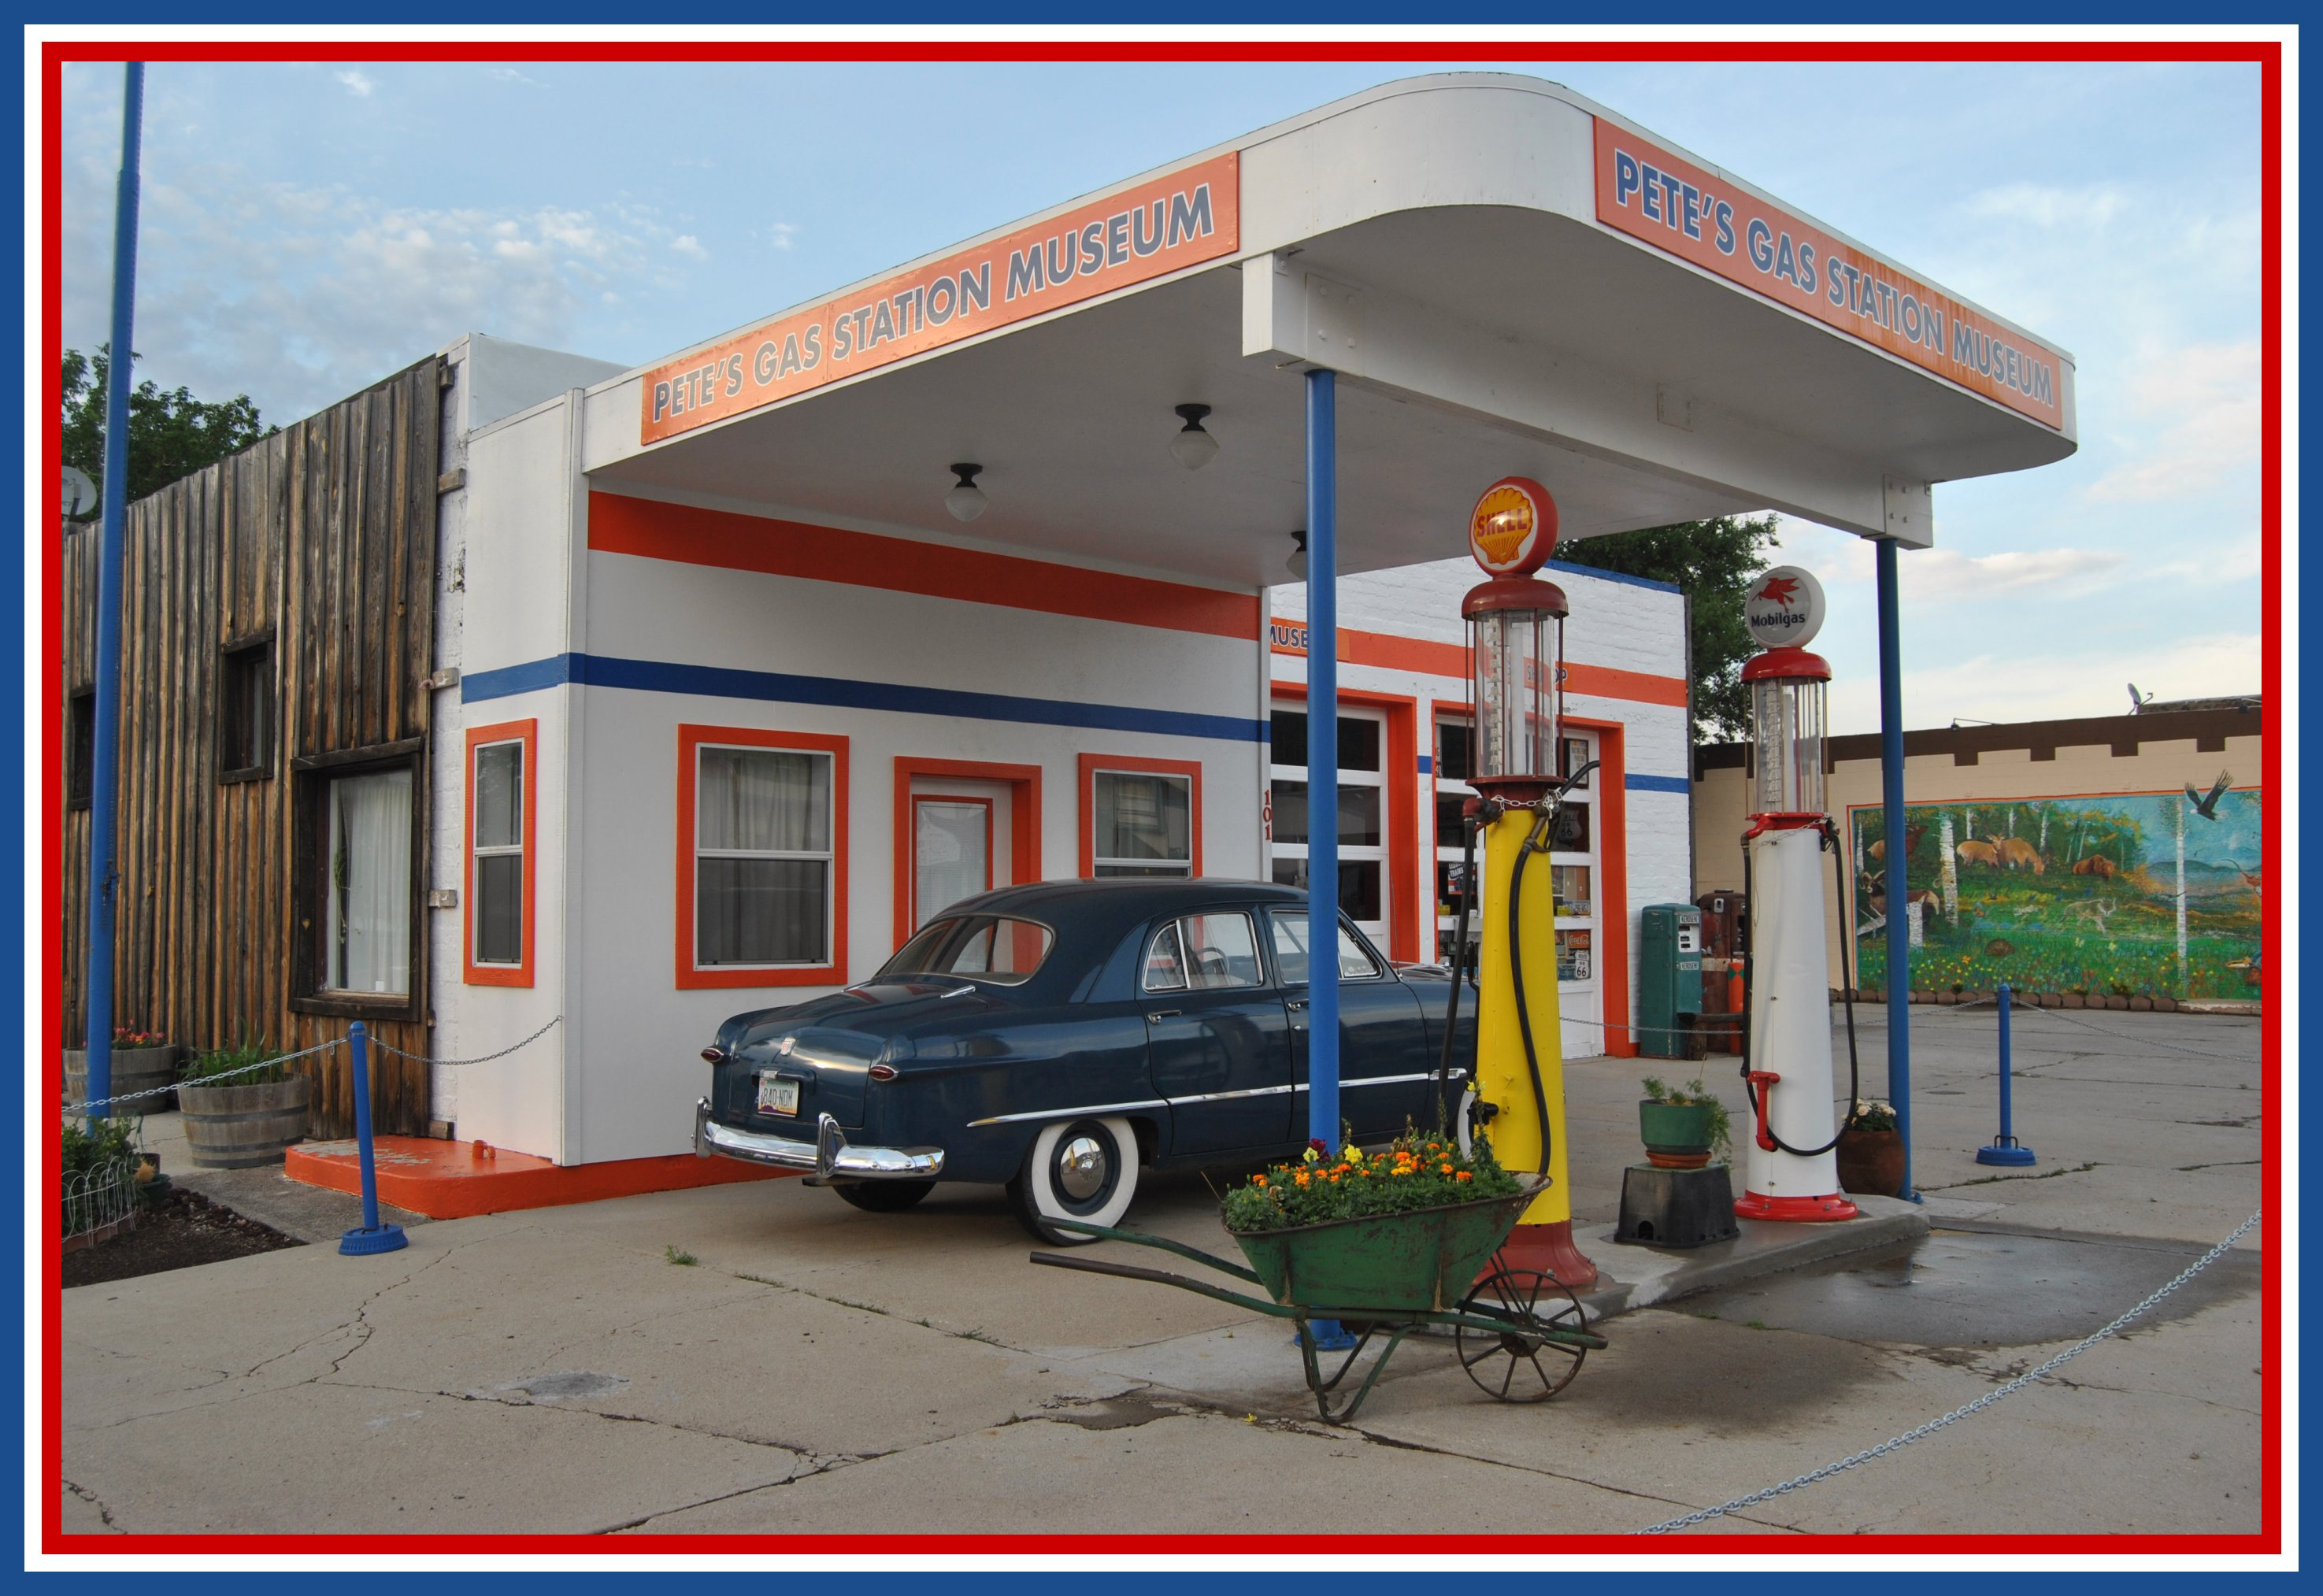 FilePeteu0027s Route 66 Gas Station Museumjpg FilePeteu0027s